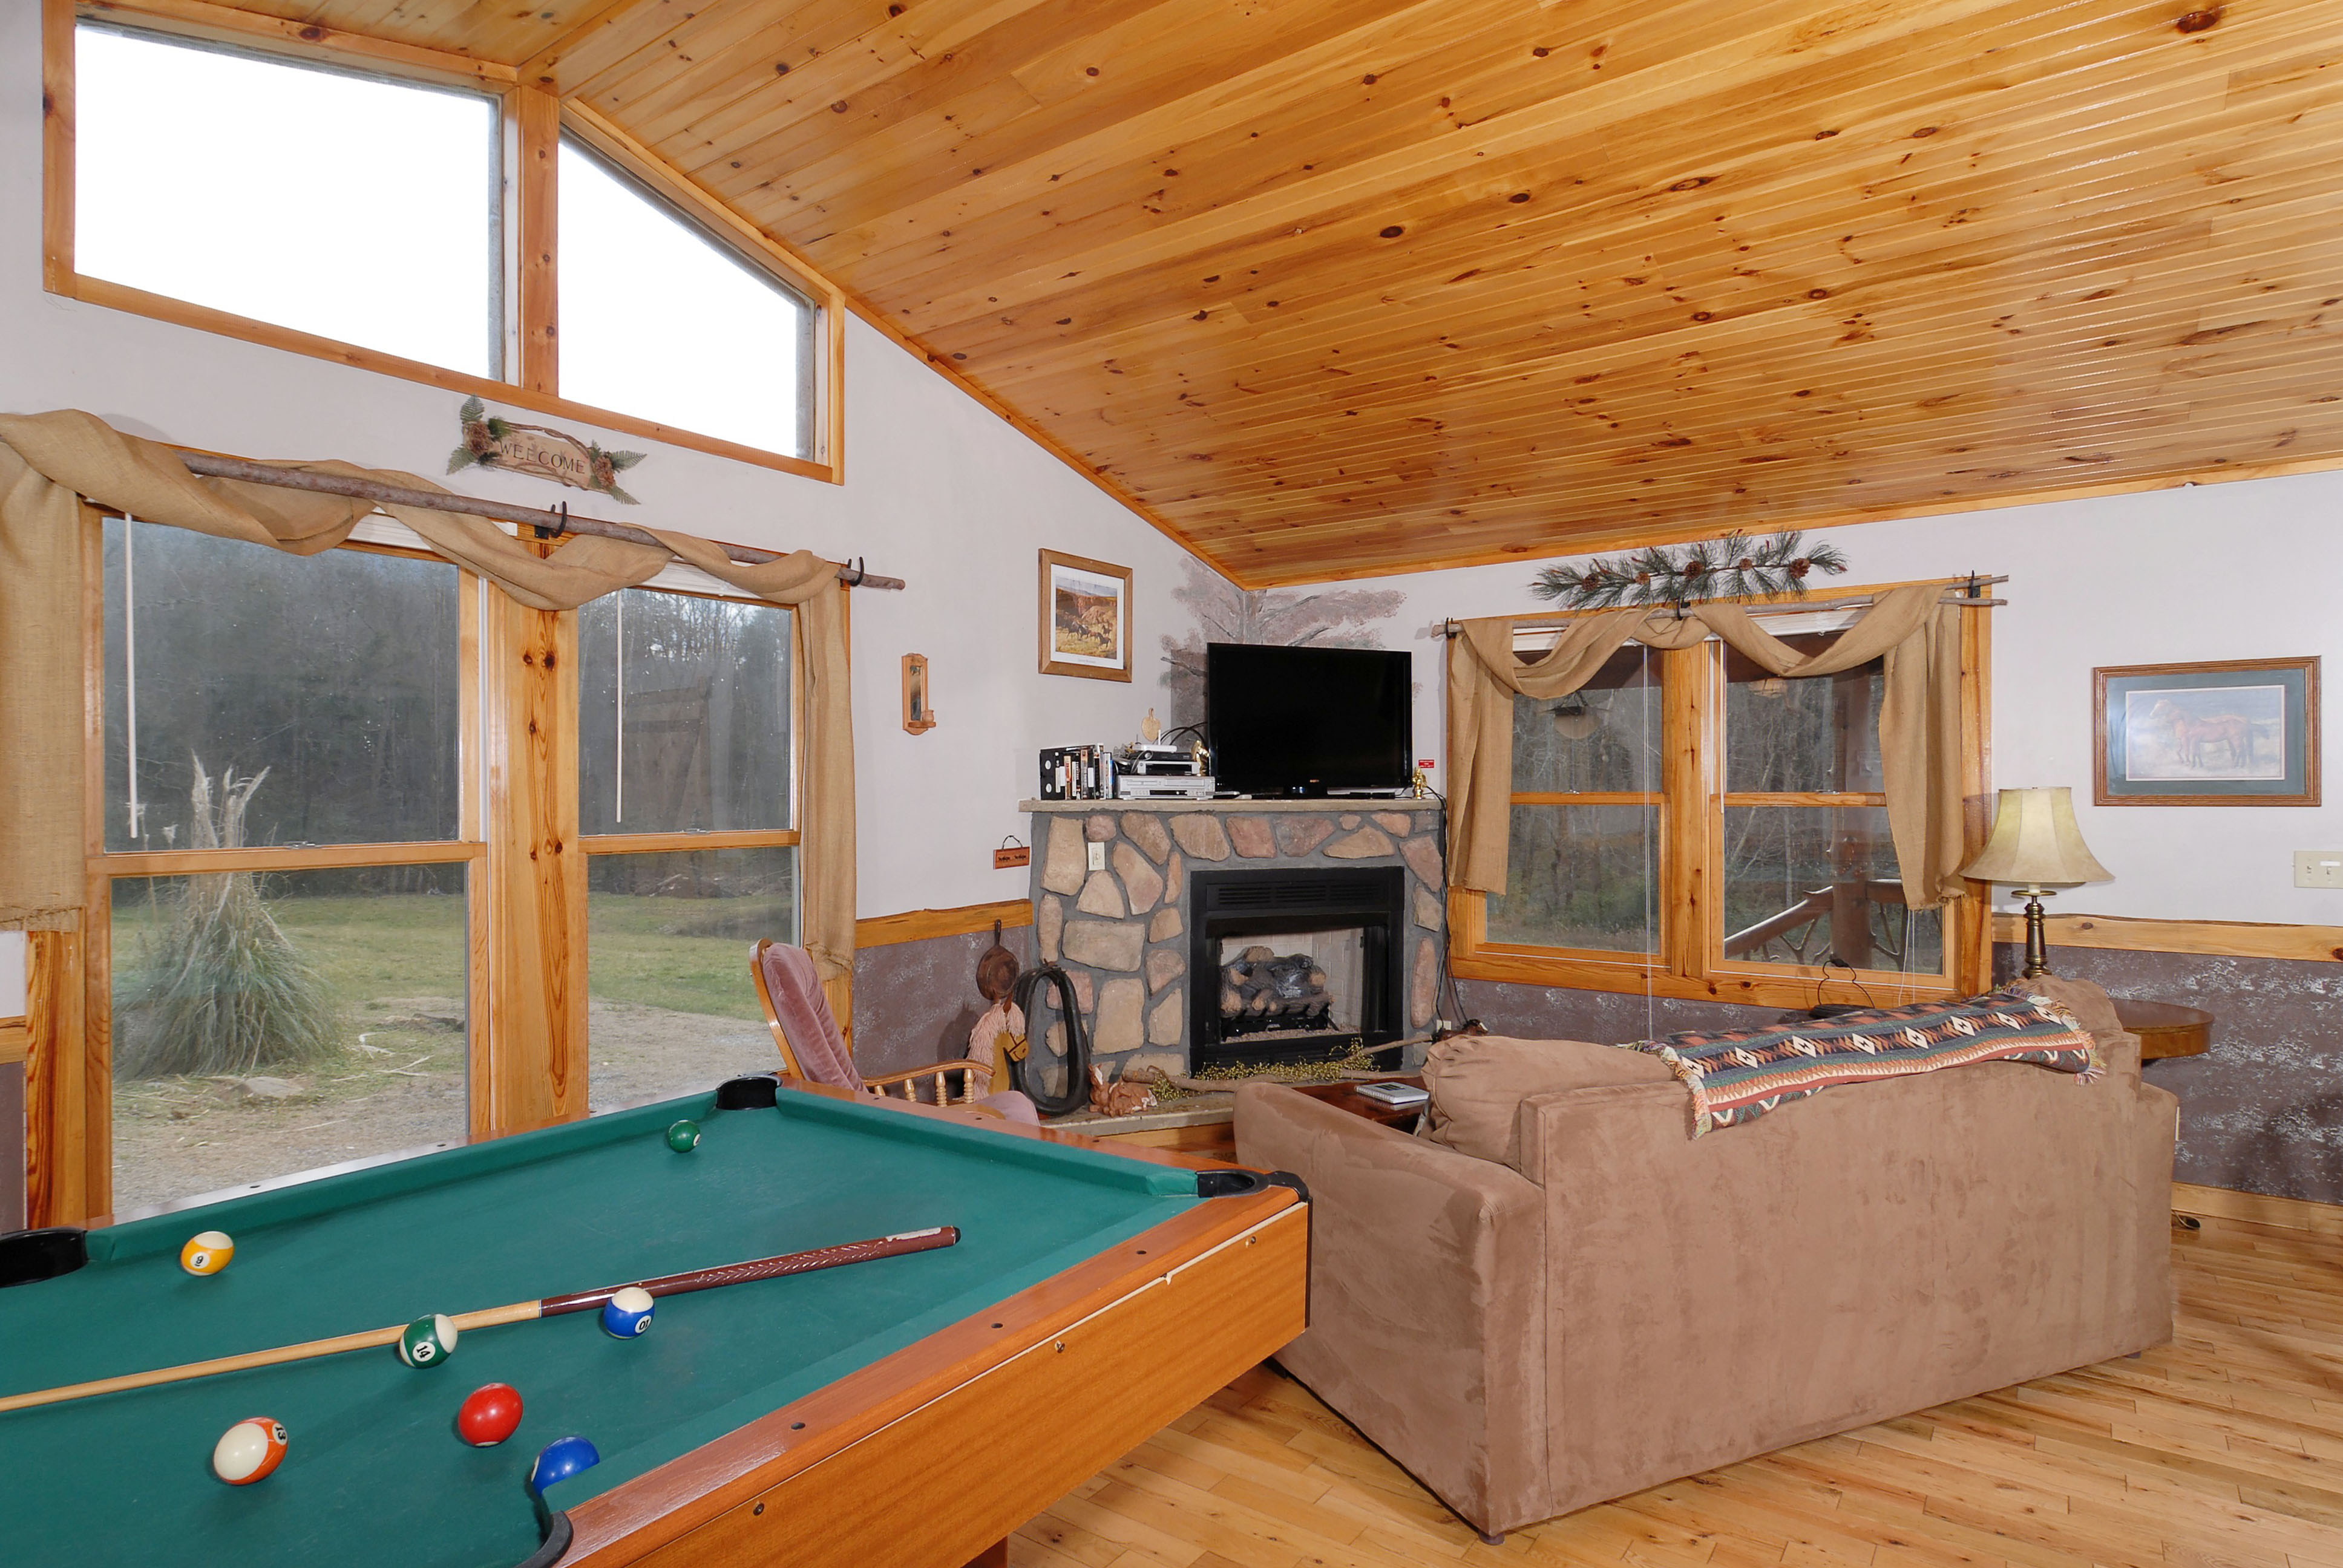 pine rental vacation indoor redawning pigeon with cabins trail pools property in cabin forge